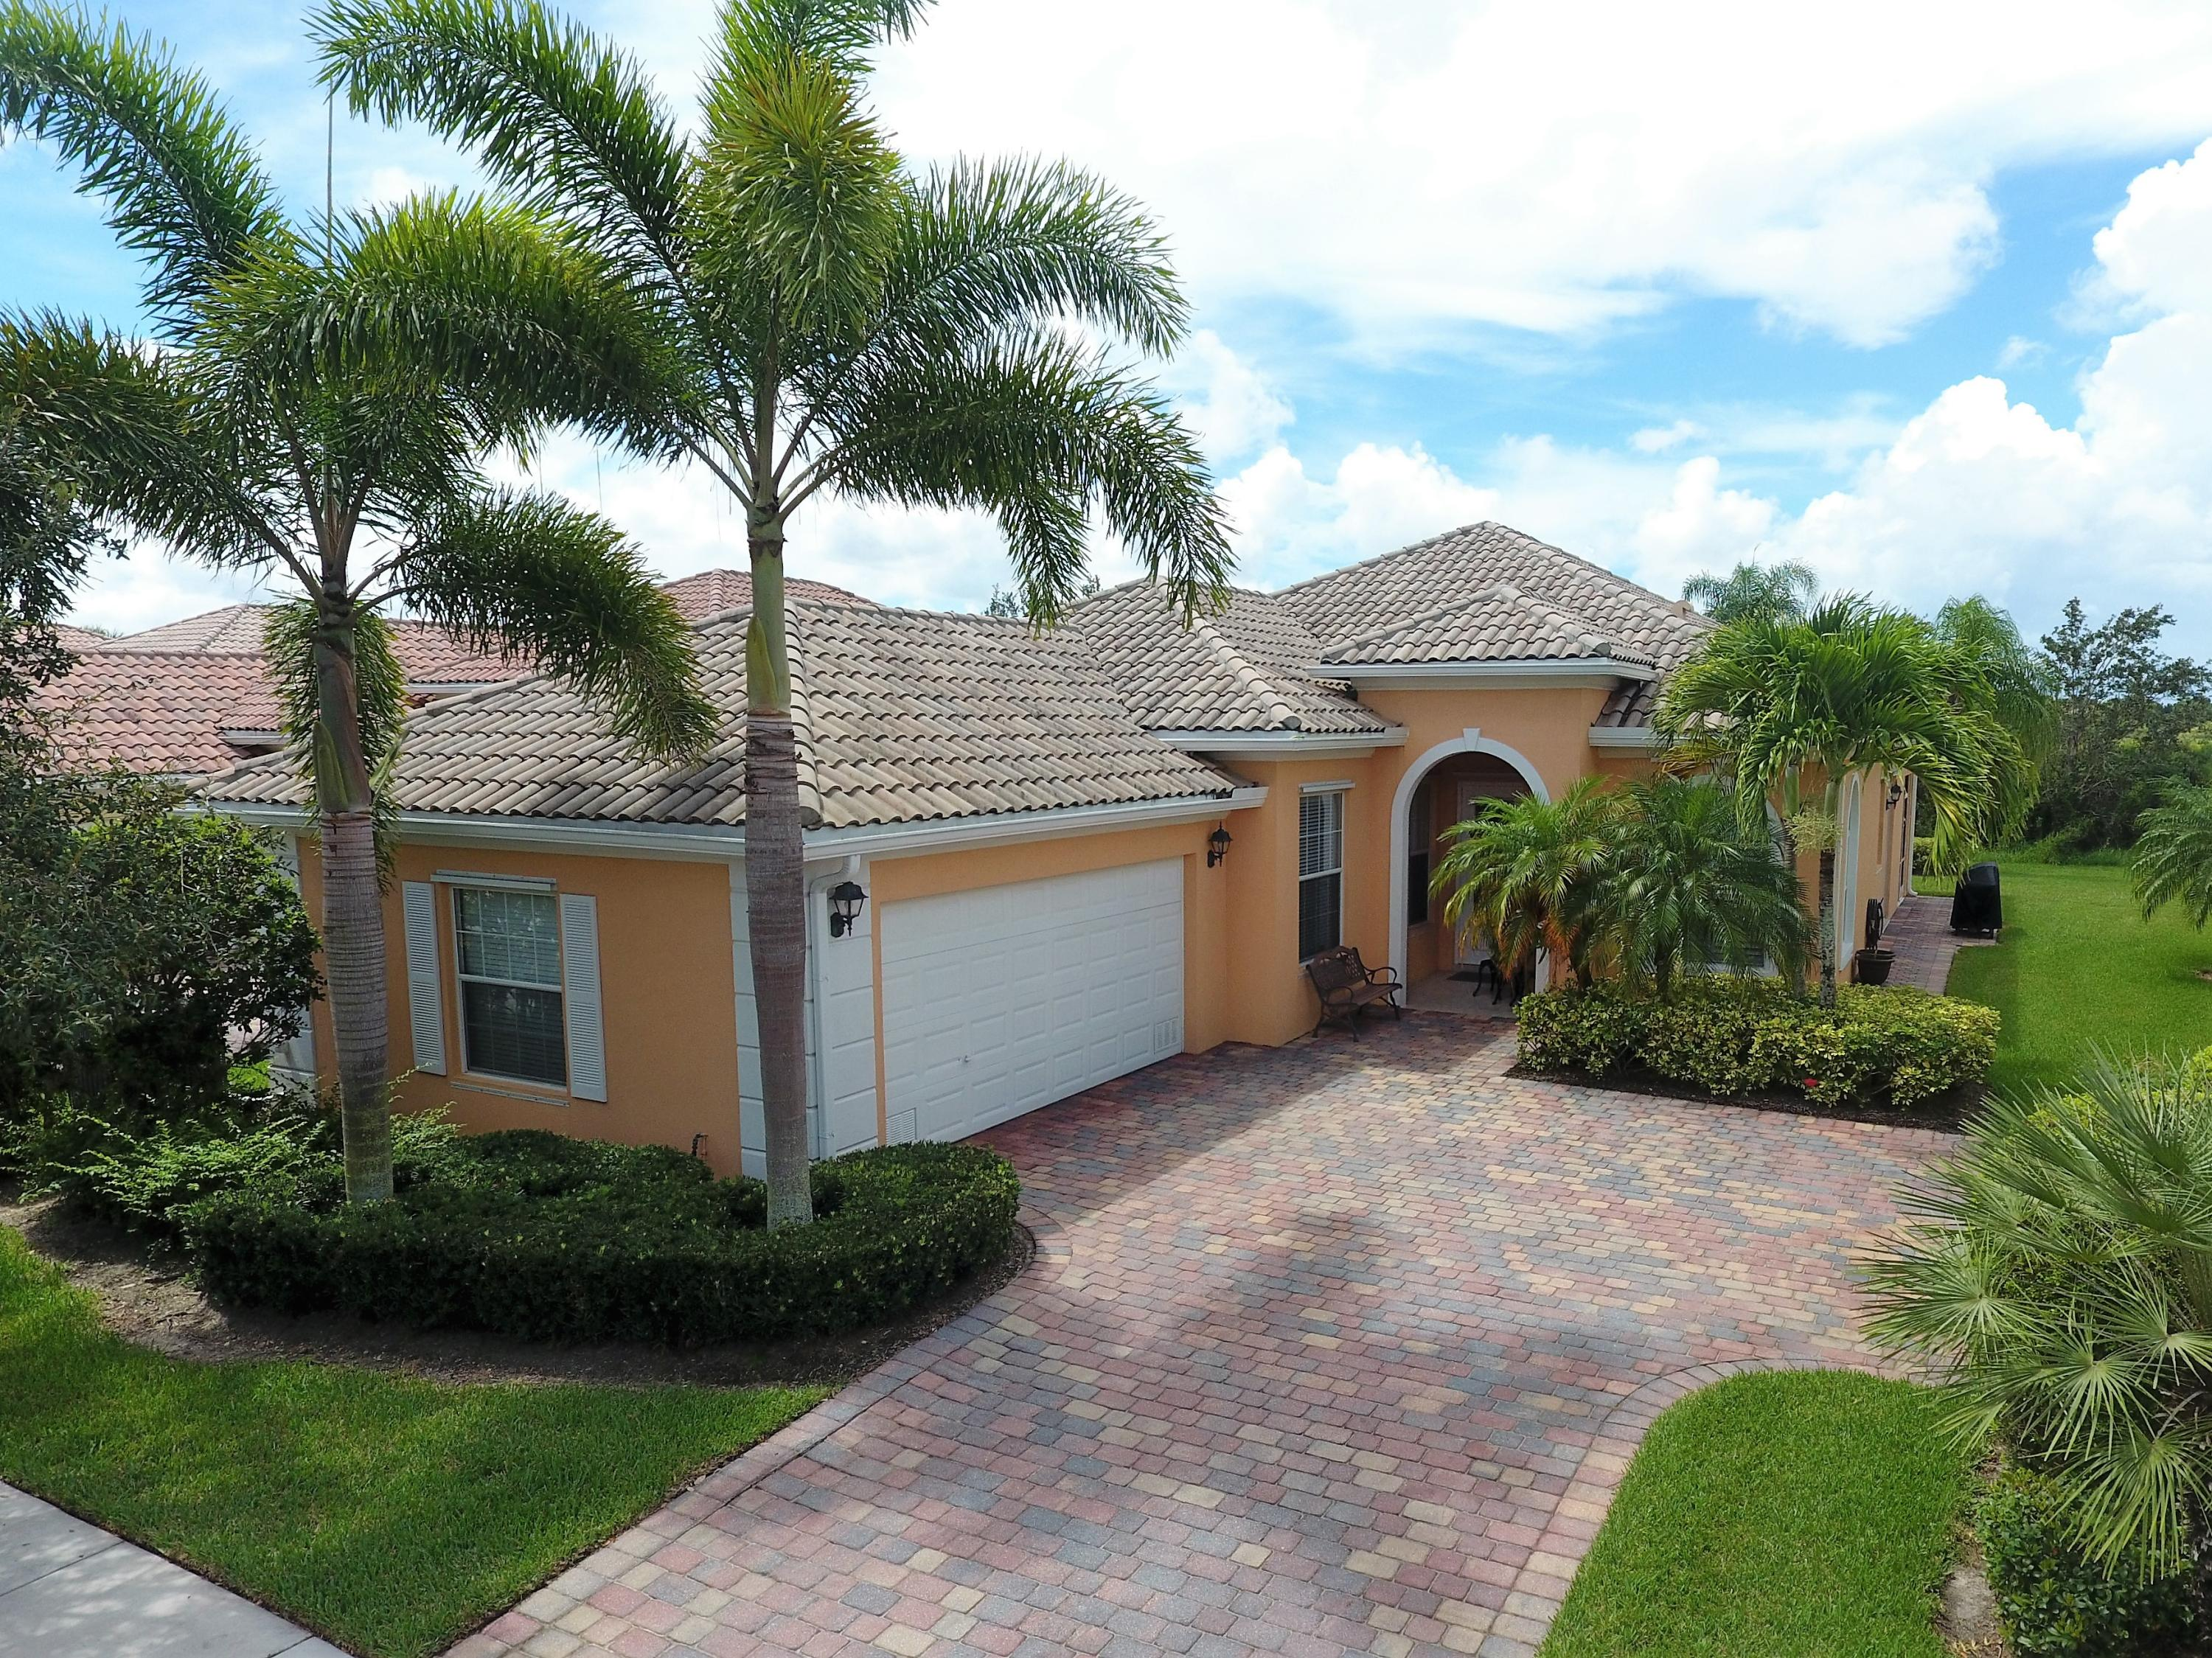 10569 Stratton Drive, Port Saint Lucie, Florida 34986, 3 Bedrooms Bedrooms, ,2 BathroomsBathrooms,Single Family,For Sale,Stratton,RX-10457687